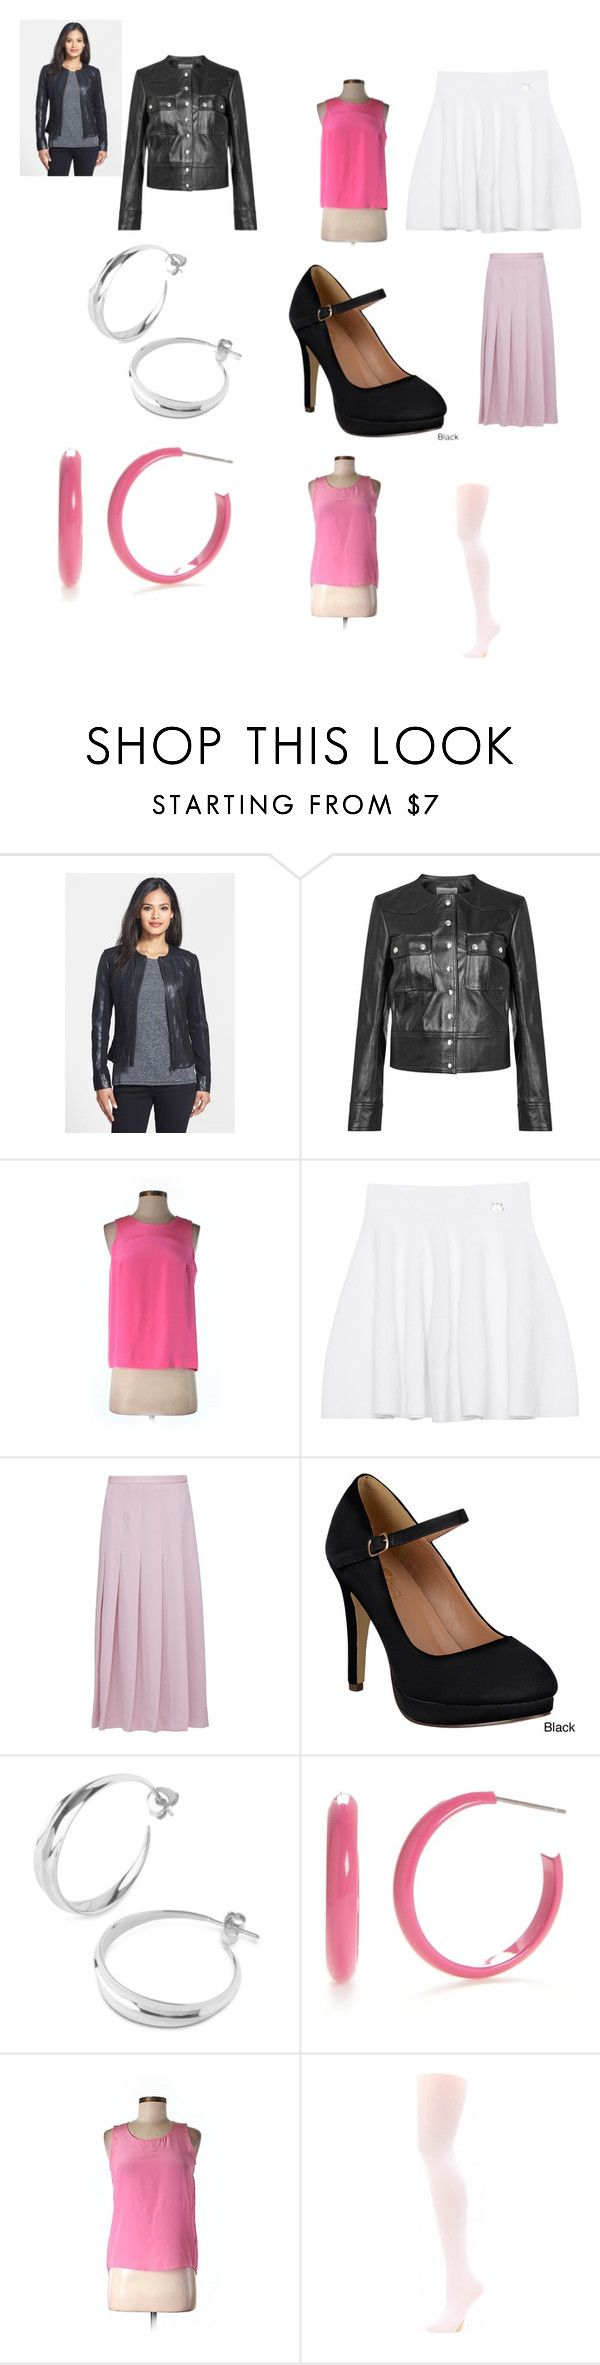 """""""Sarah Michelle Gellar's Buffybot outfit from """"Buffy the Vampire Slayer"""" (""""Intervention"""")"""" by terrence-michael-clay on Polyvore featuring La Marque, Étoile Isabel Marant, Amanda Uprichard, Kenzo, Mother of Pearl, Journee Collection, Dinny Hall, Kim Rogers, Uniqlo and Capezio Dance"""